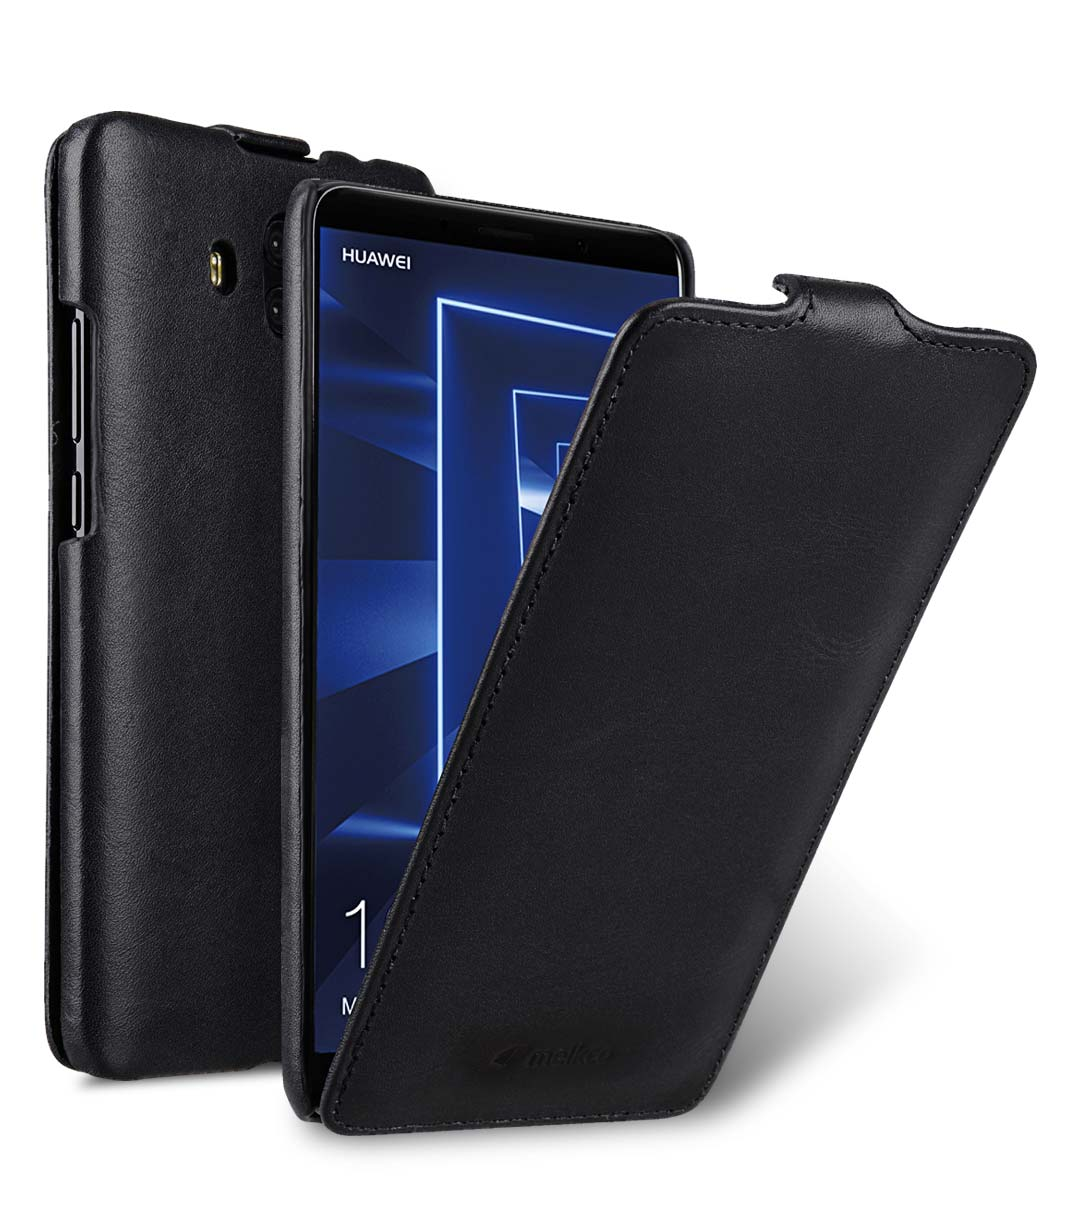 Premium Leather Case for Huawei Mate 10 - Jacka Type